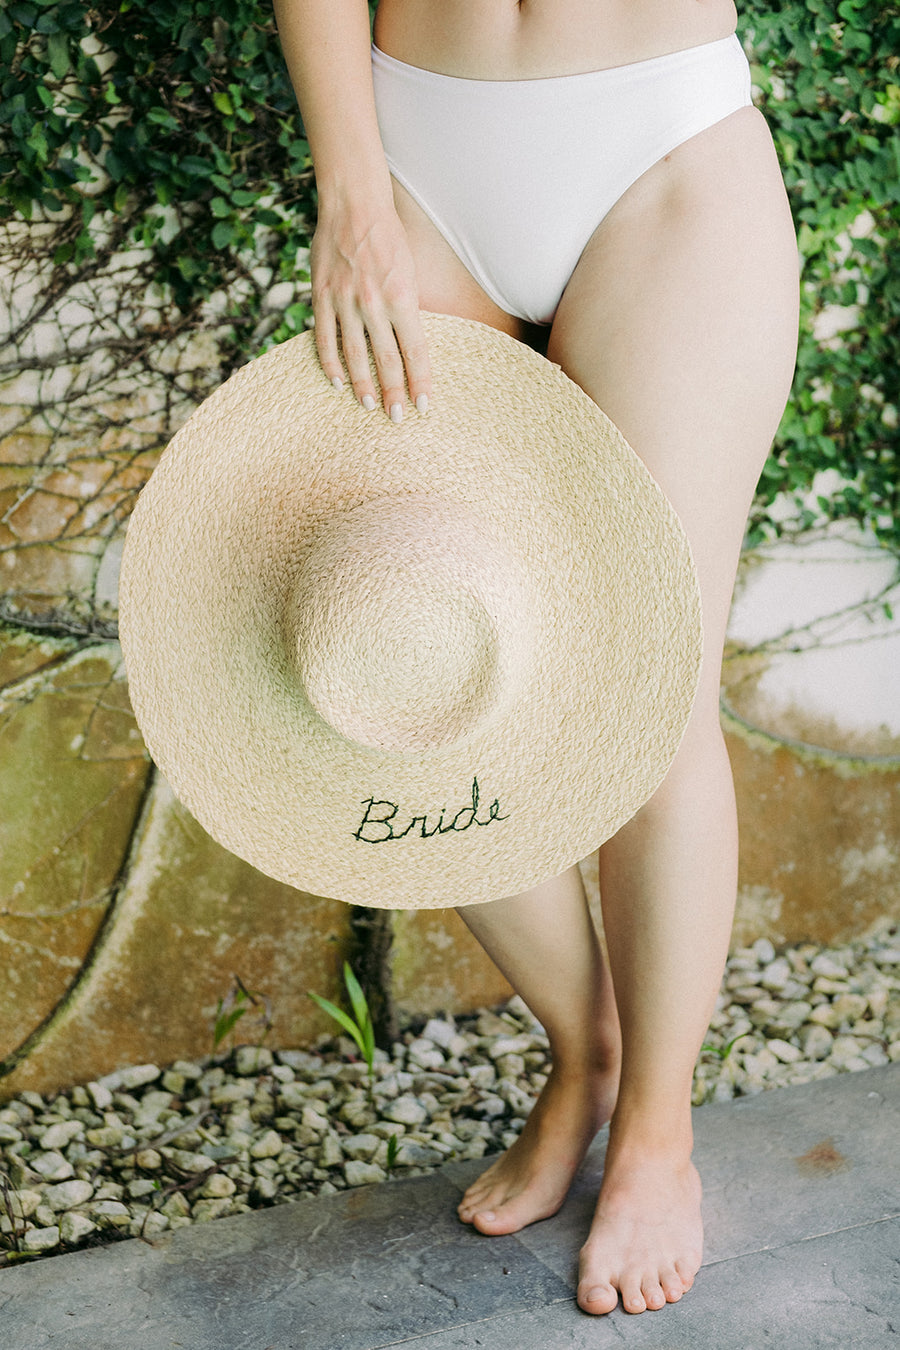 Bride Sun Hat by HatAttack - The Beach Bride by Chic Parisien, a destination for beach weddings, bachelorettes and honeymoons